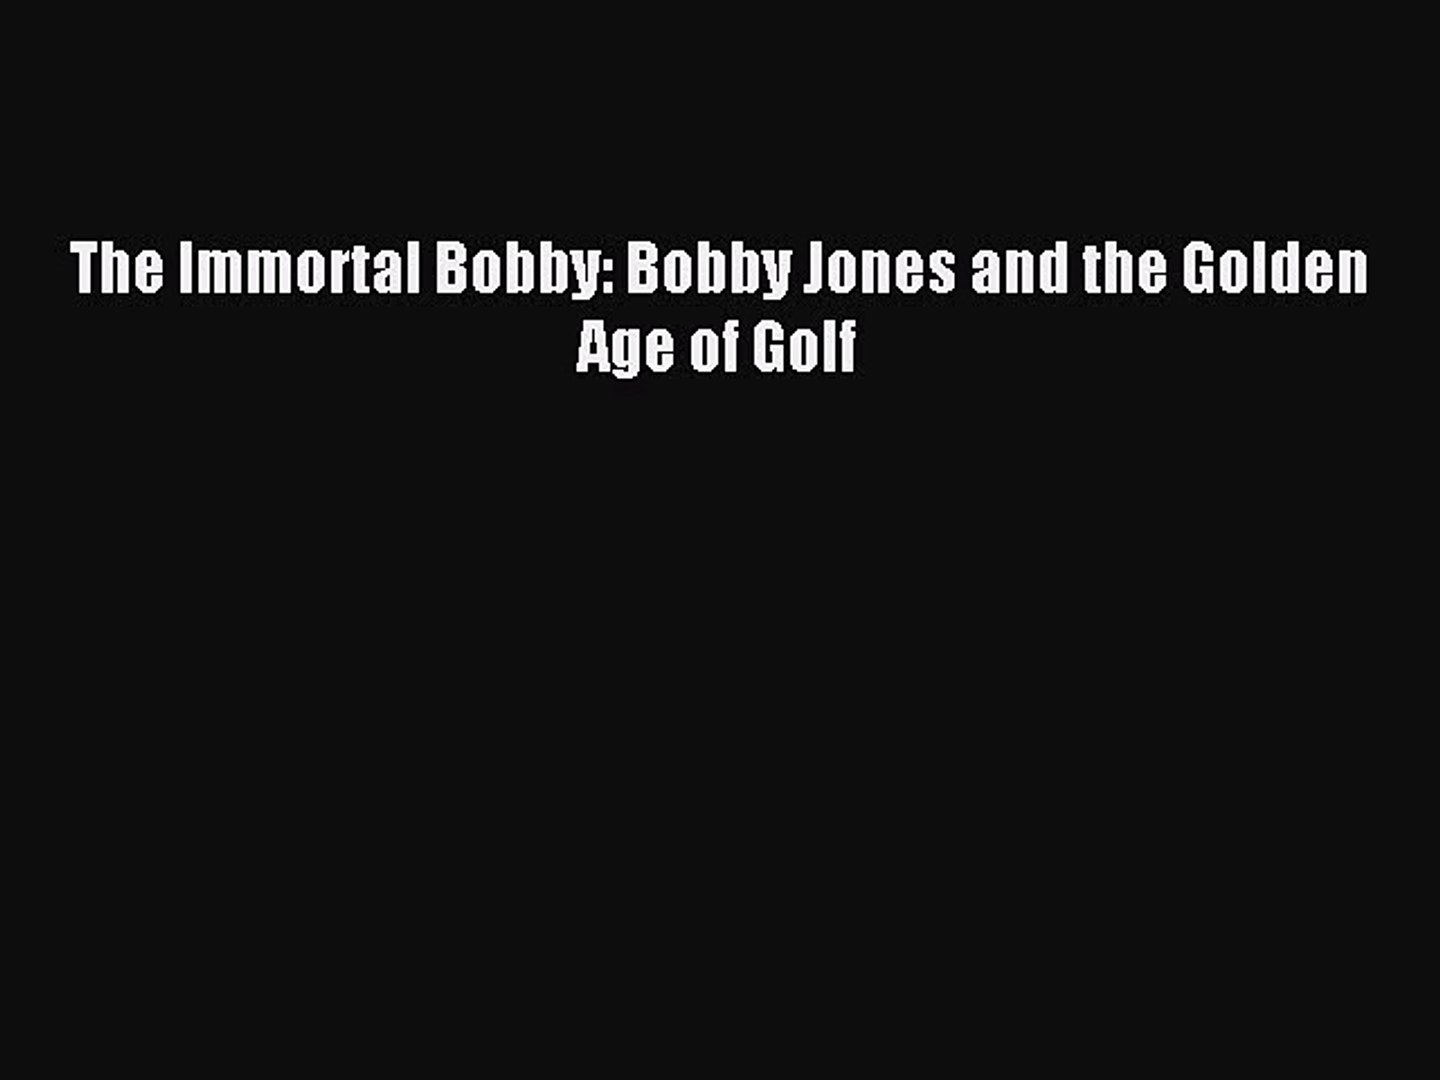 Read The Immortal Bobby: Bobby Jones and the Golden Age of Golf ebook textbooks